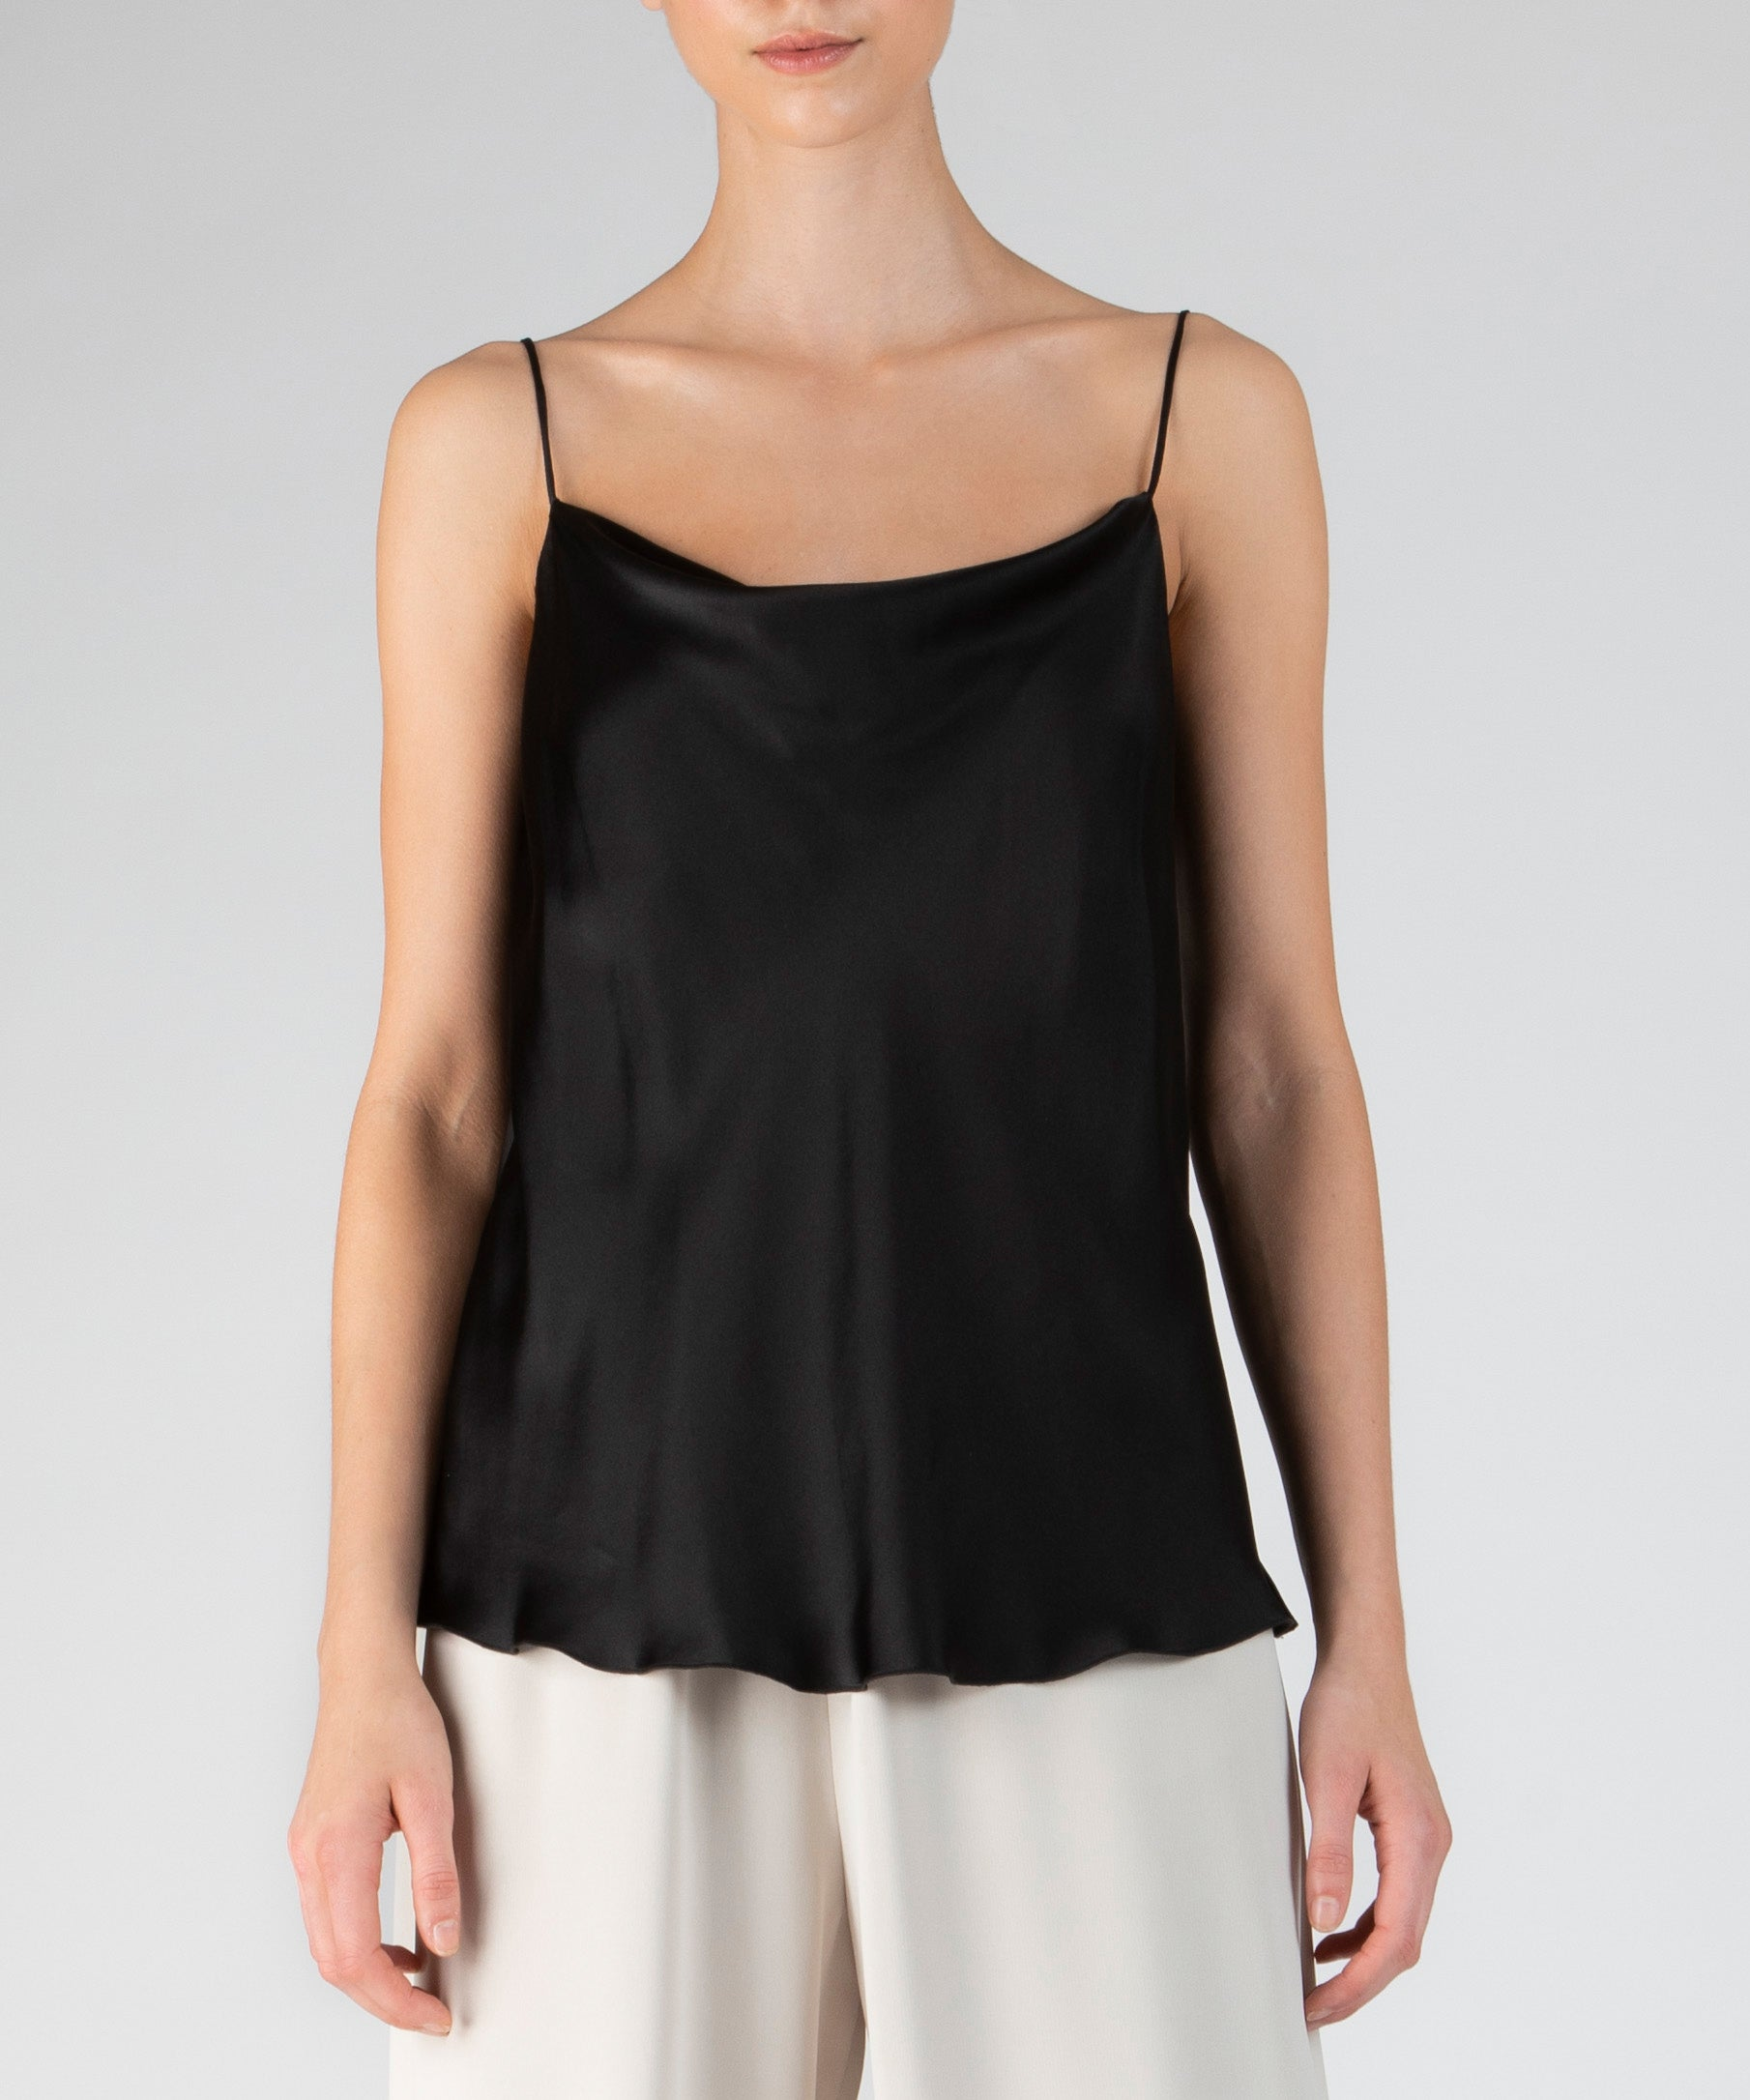 Black Silk Charmeuse Cowl Neck Cami - Women's Silk Top by ATM Anthony Thomas Melillo